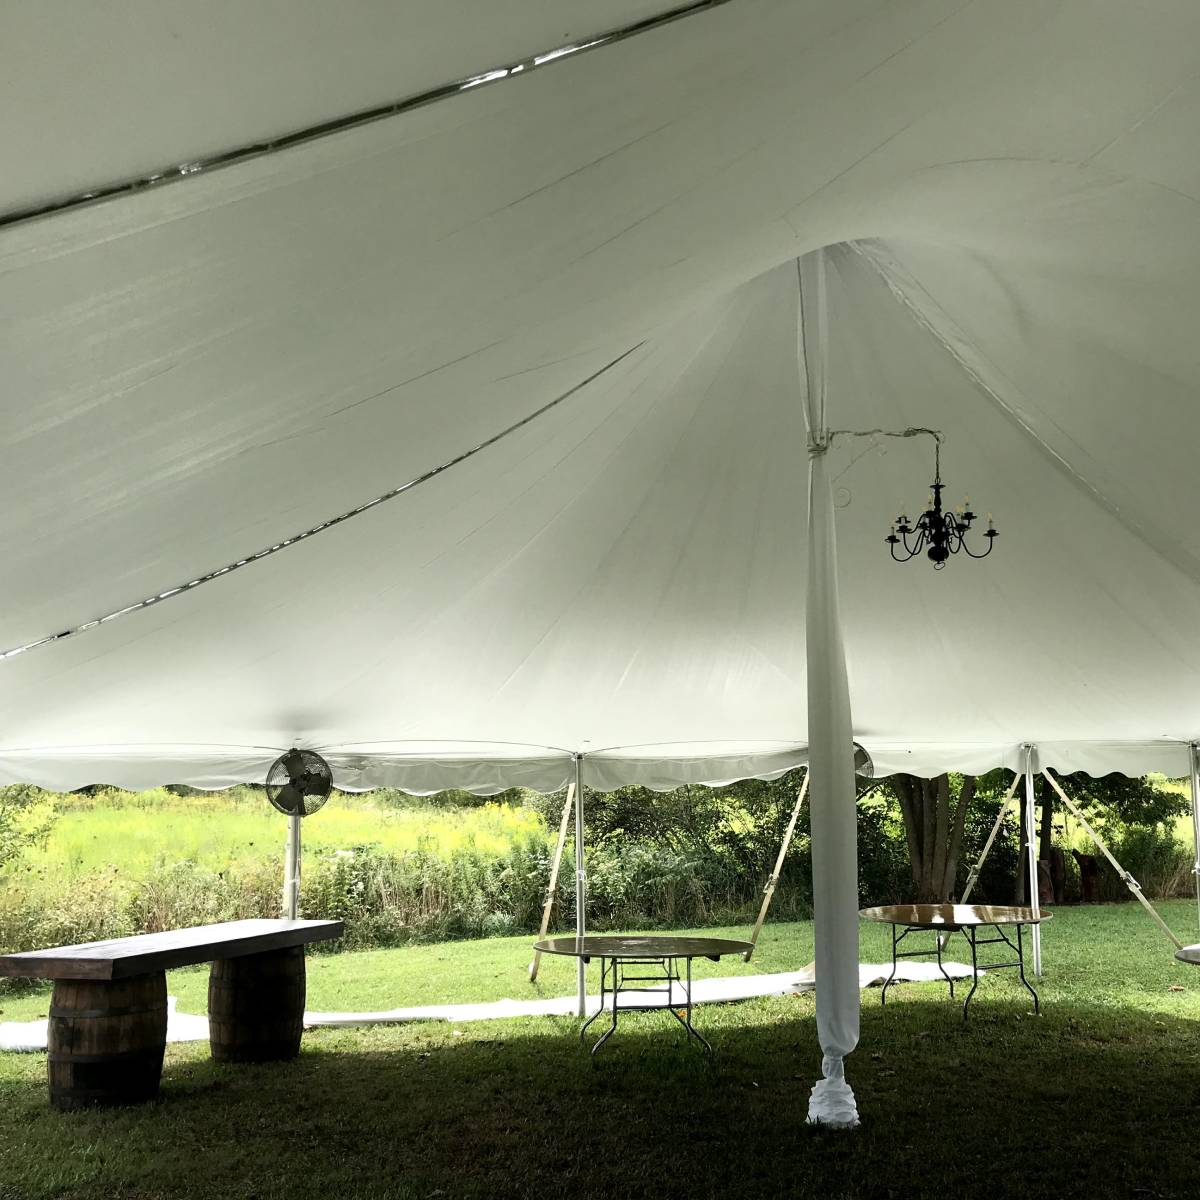 Black Wrought Iron Chandelier In 30x45 Pole Tent With White Center Pole Covers